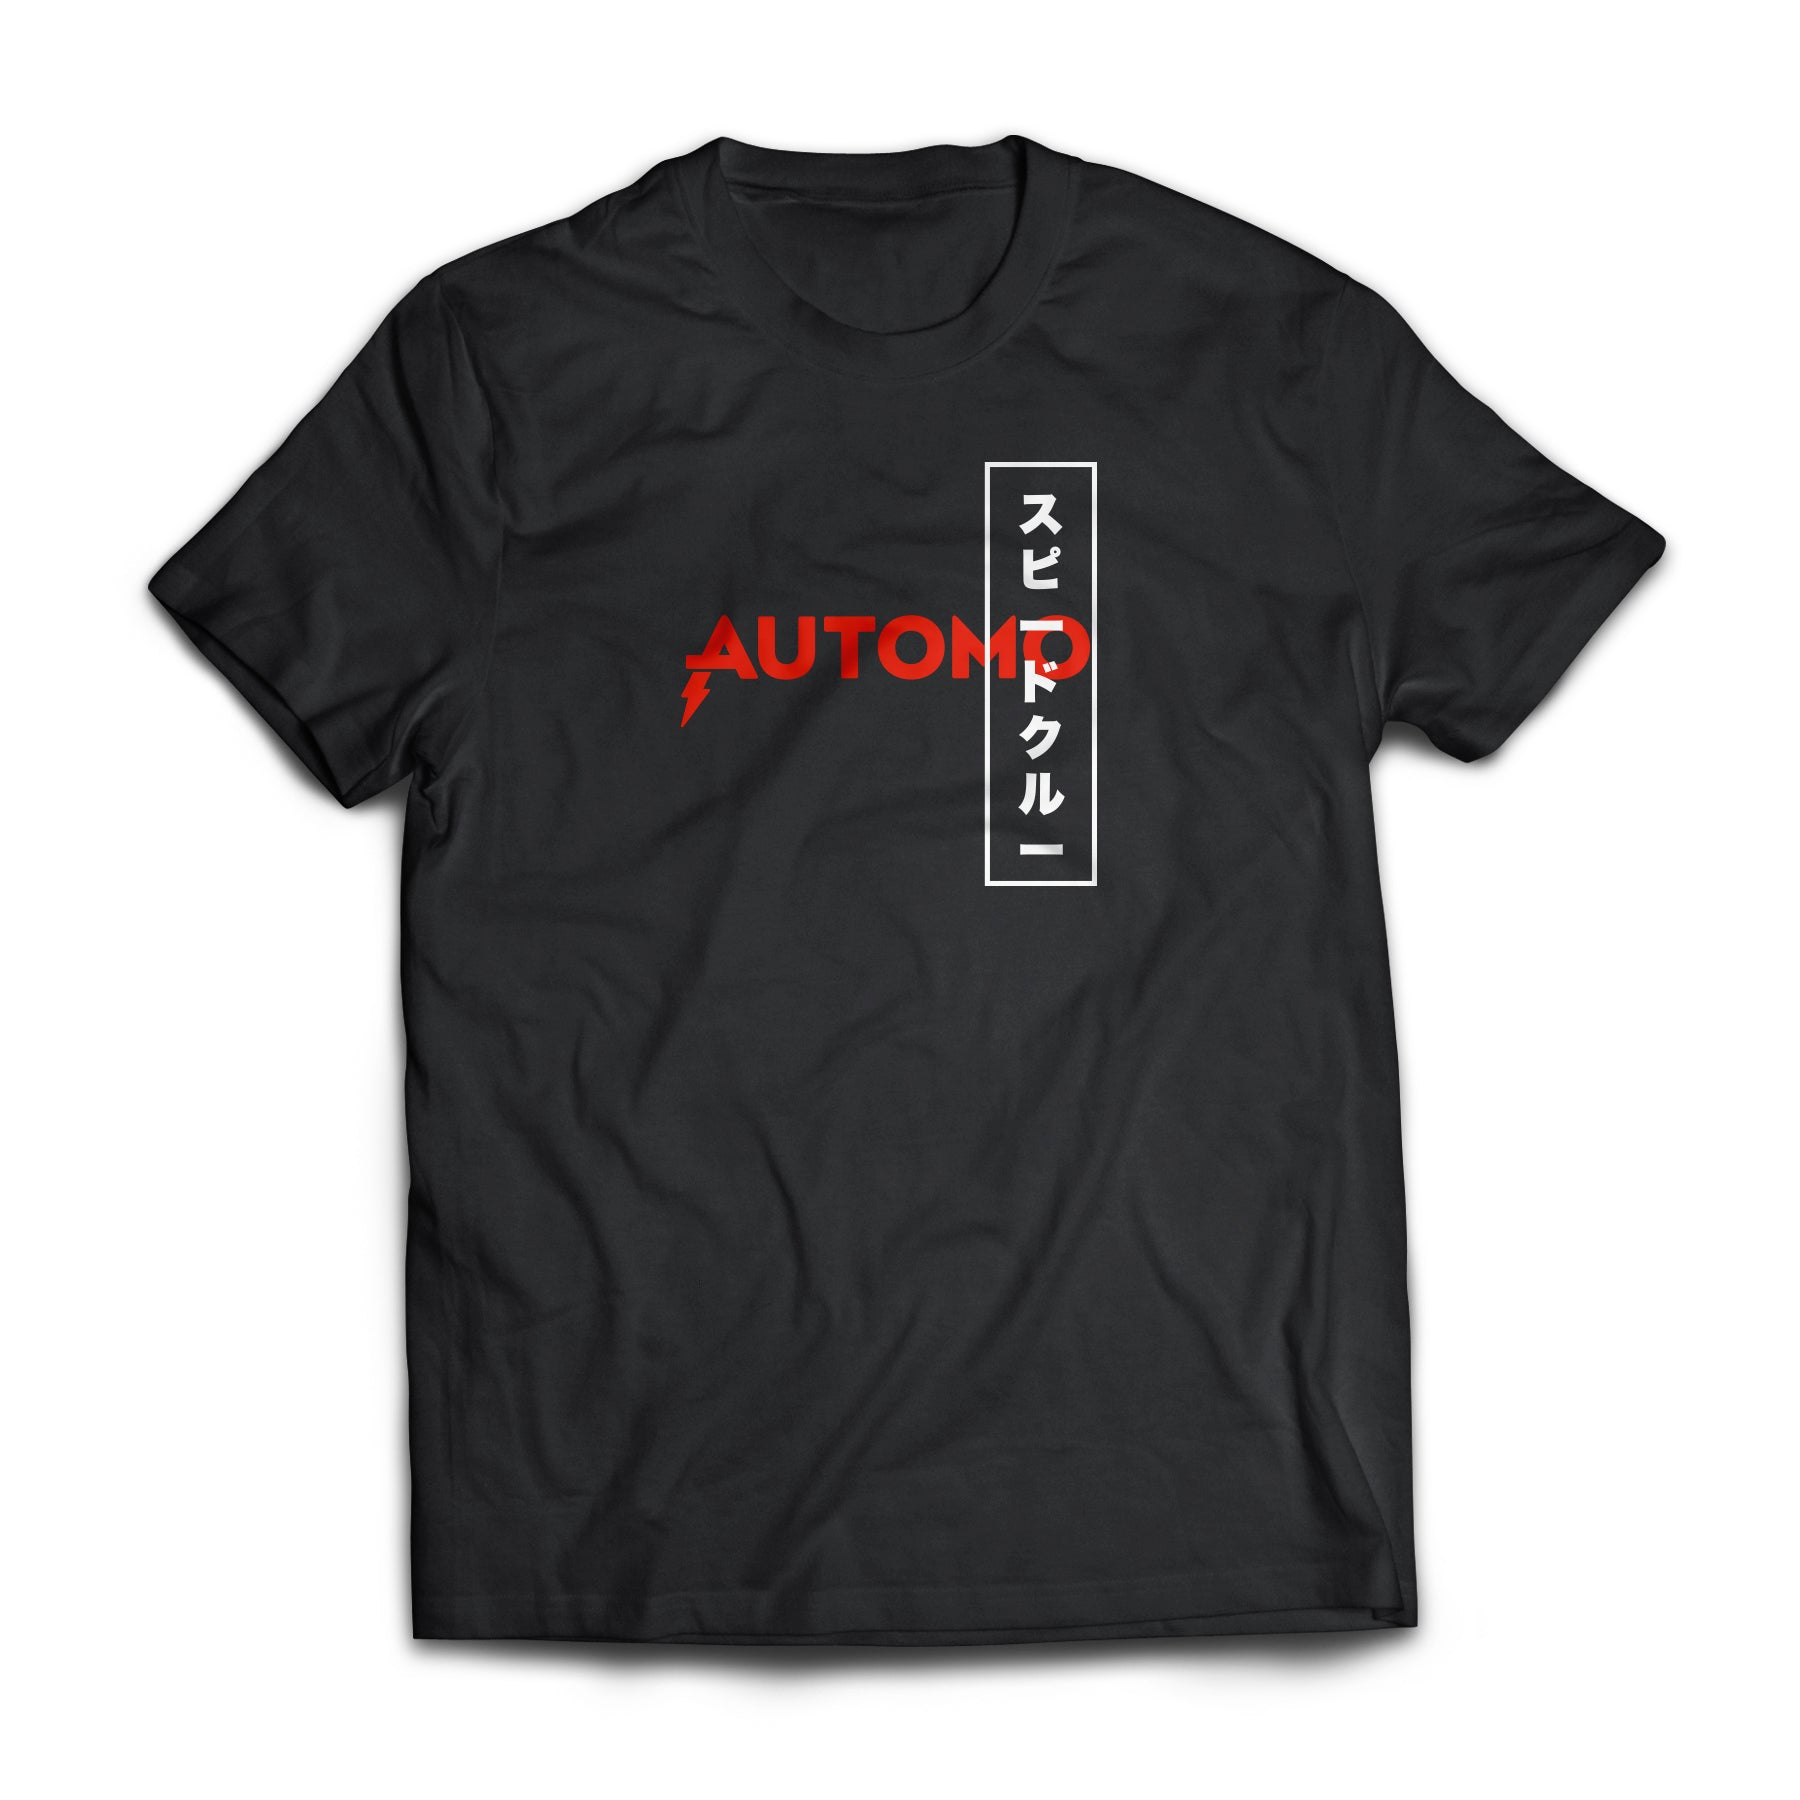 Automo Japanese Speed Crew T-Shirt -  T-shirt - Automo Design Co.